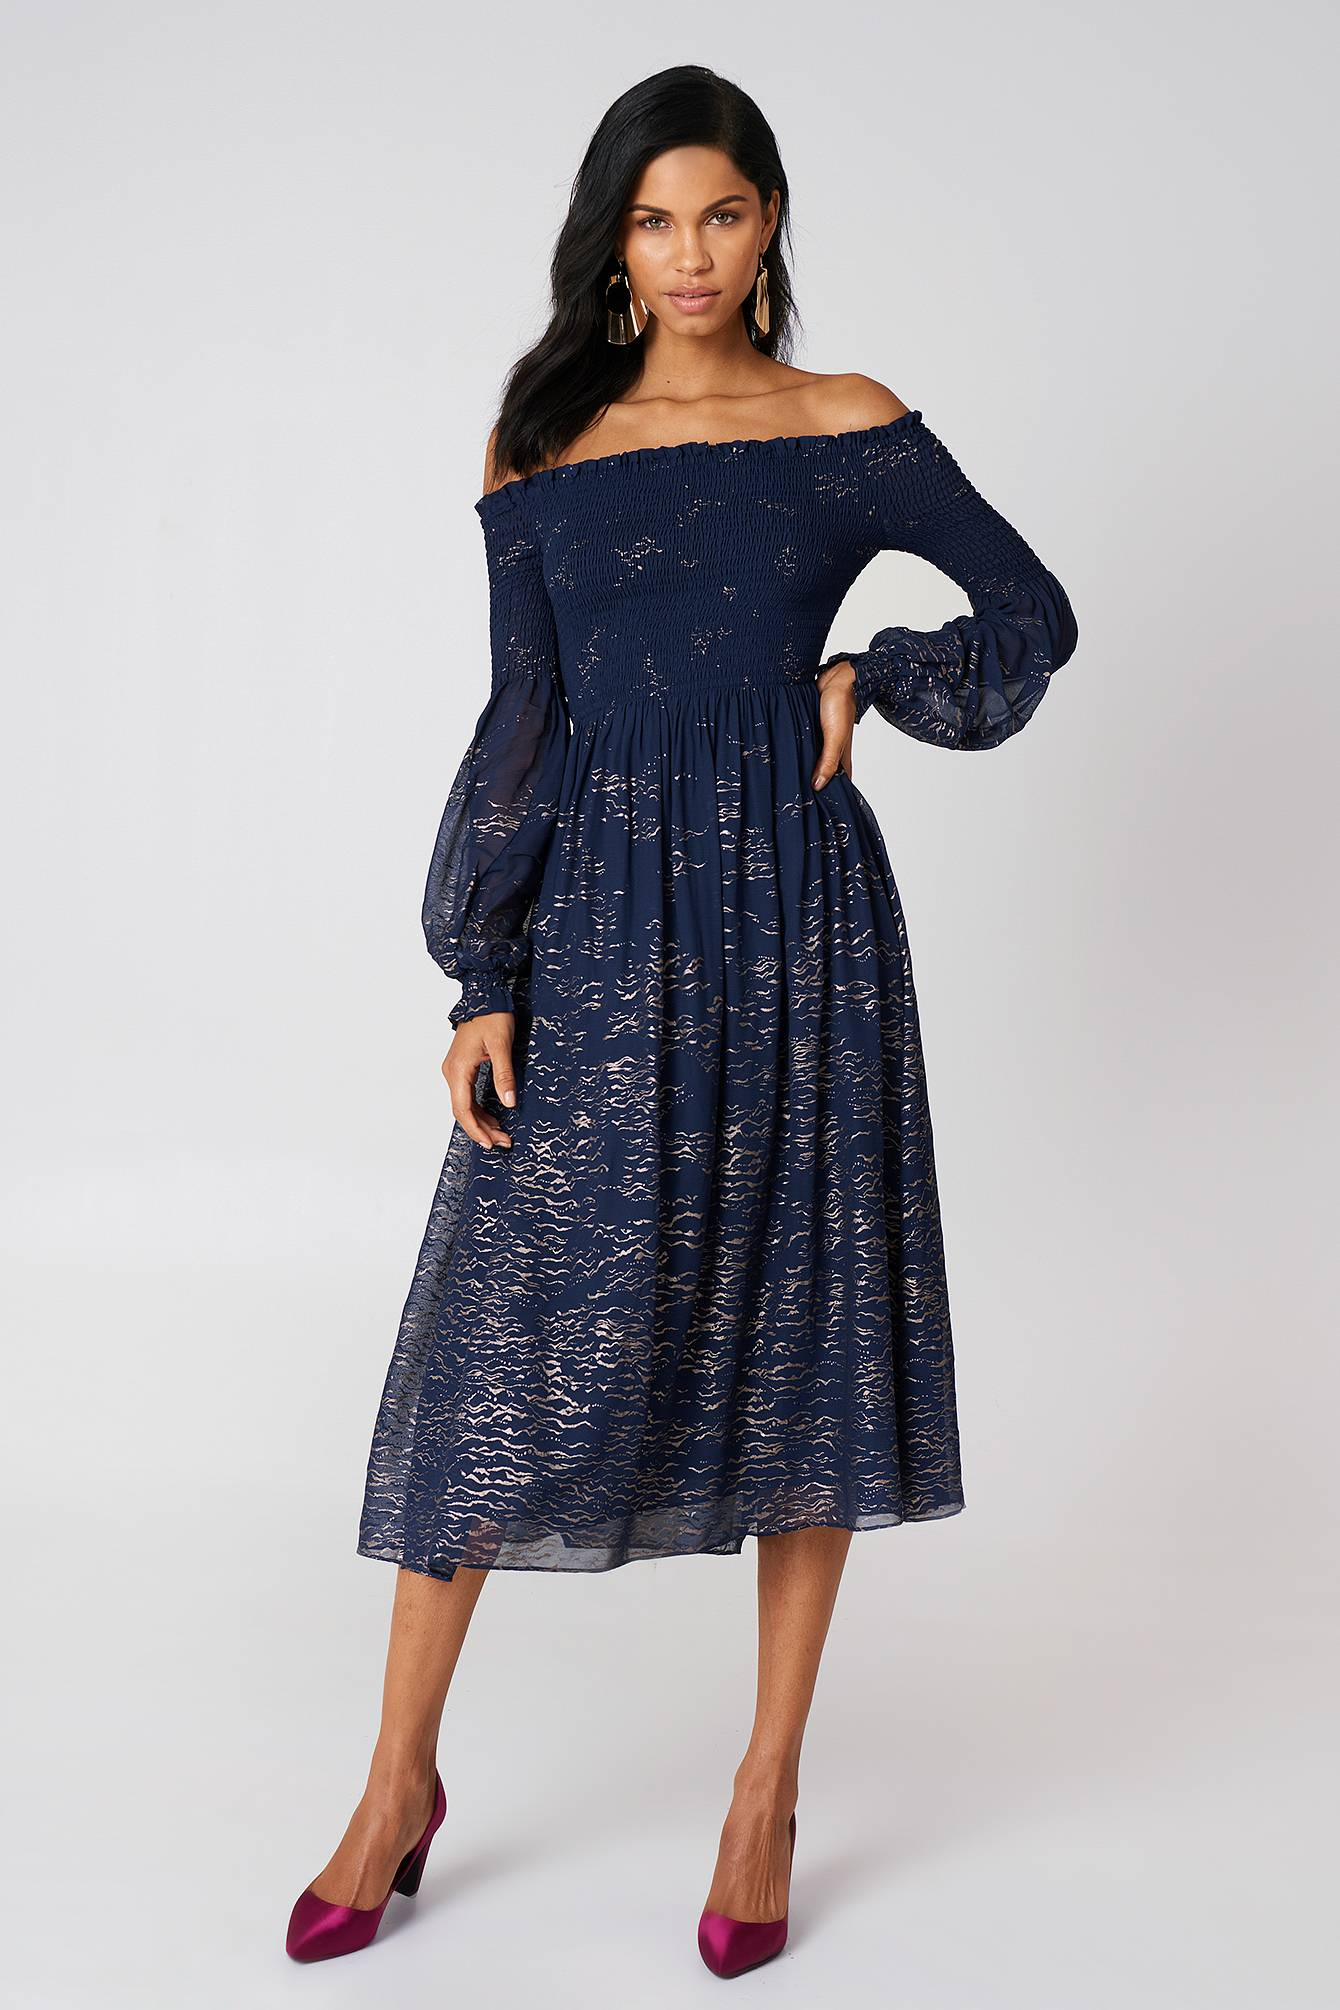 Free People Foiled Smock Midi Dress - Blue,Multicolor,Navy